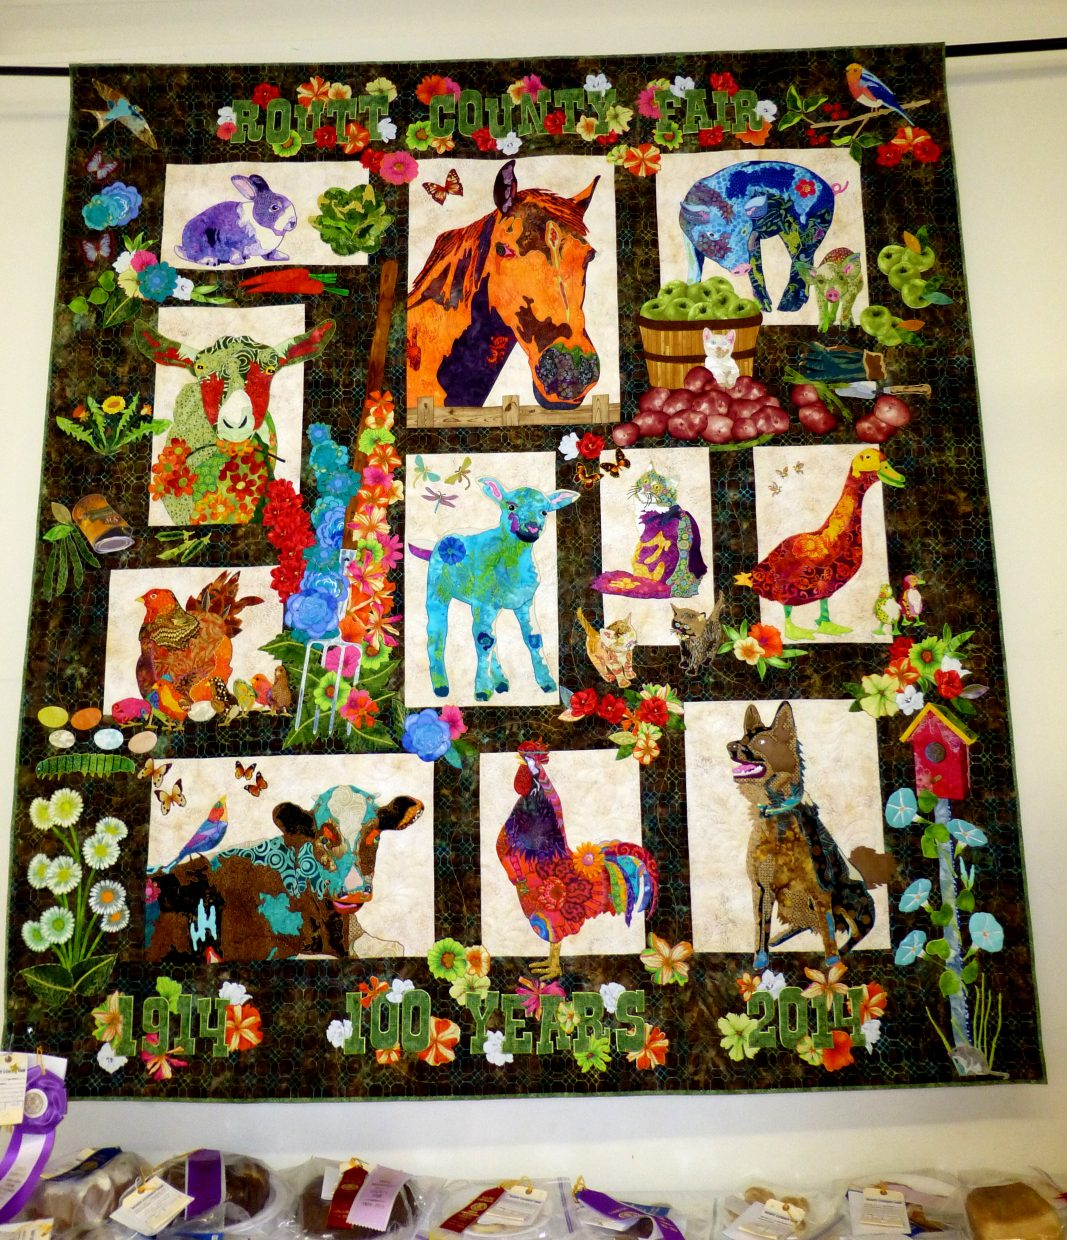 Centennial quilt. Submitted by Gail Hanley.